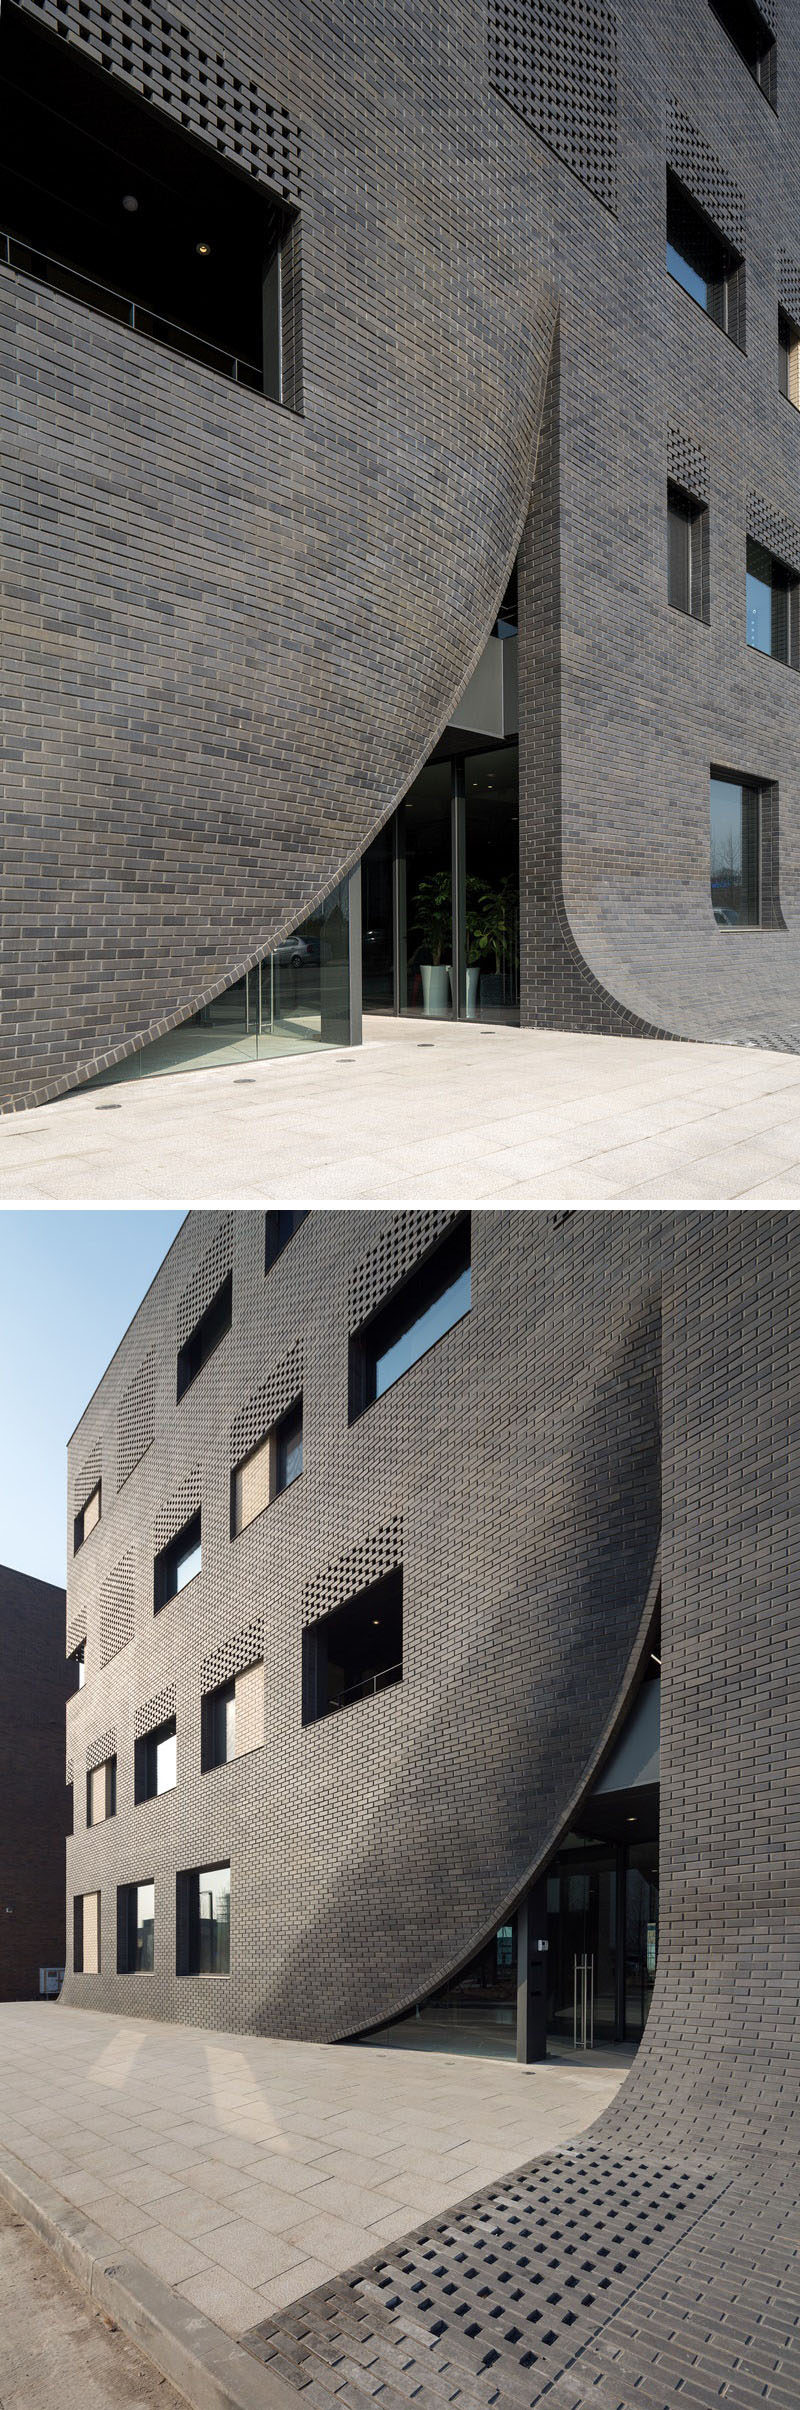 This black brick building in Korea has sections of curved brickwork that expose the entrances, and also curve down to meet the sidewalk.